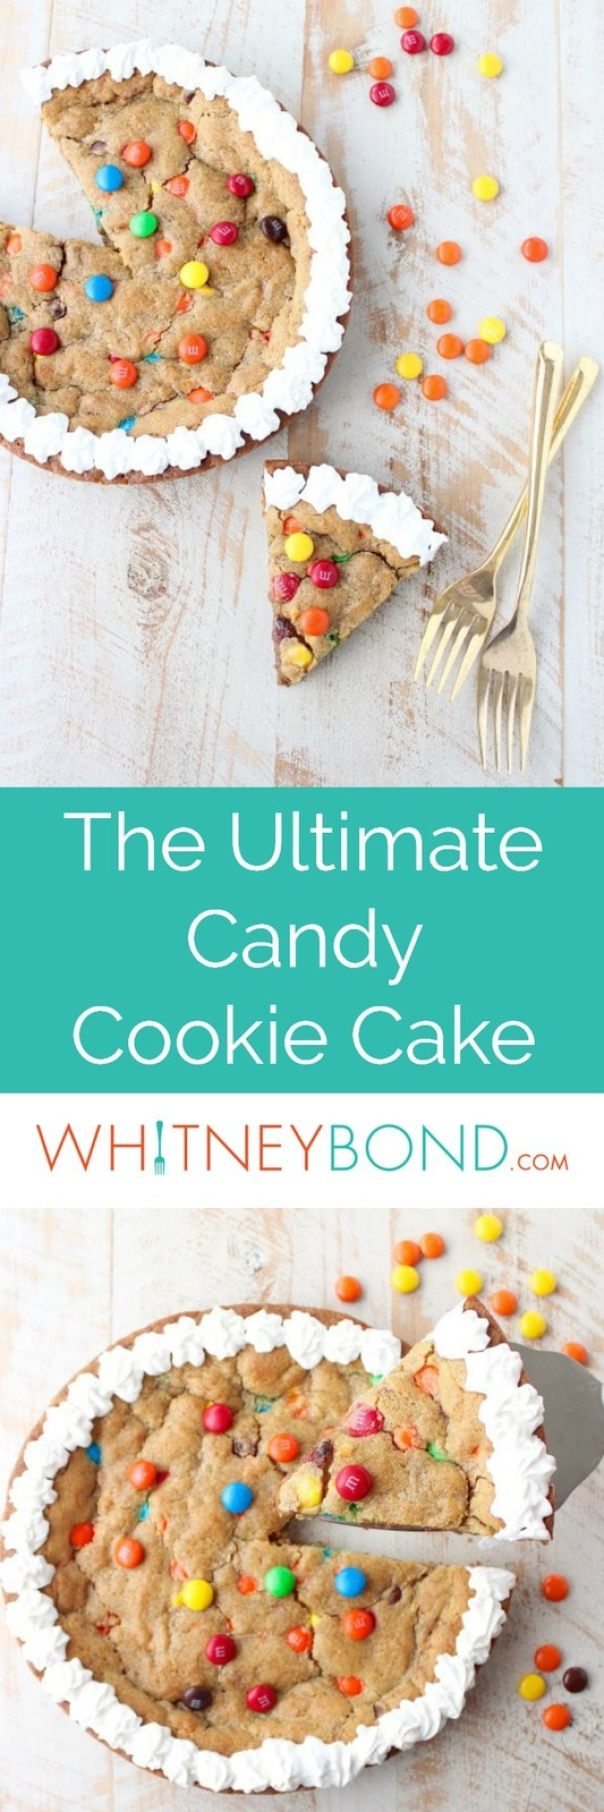 The Ultimate Candy Cookie Cake recipe is perfect for Halloween, birthdays or holidays, add your favorite candy to cookie dough & bake into a tasty cake!